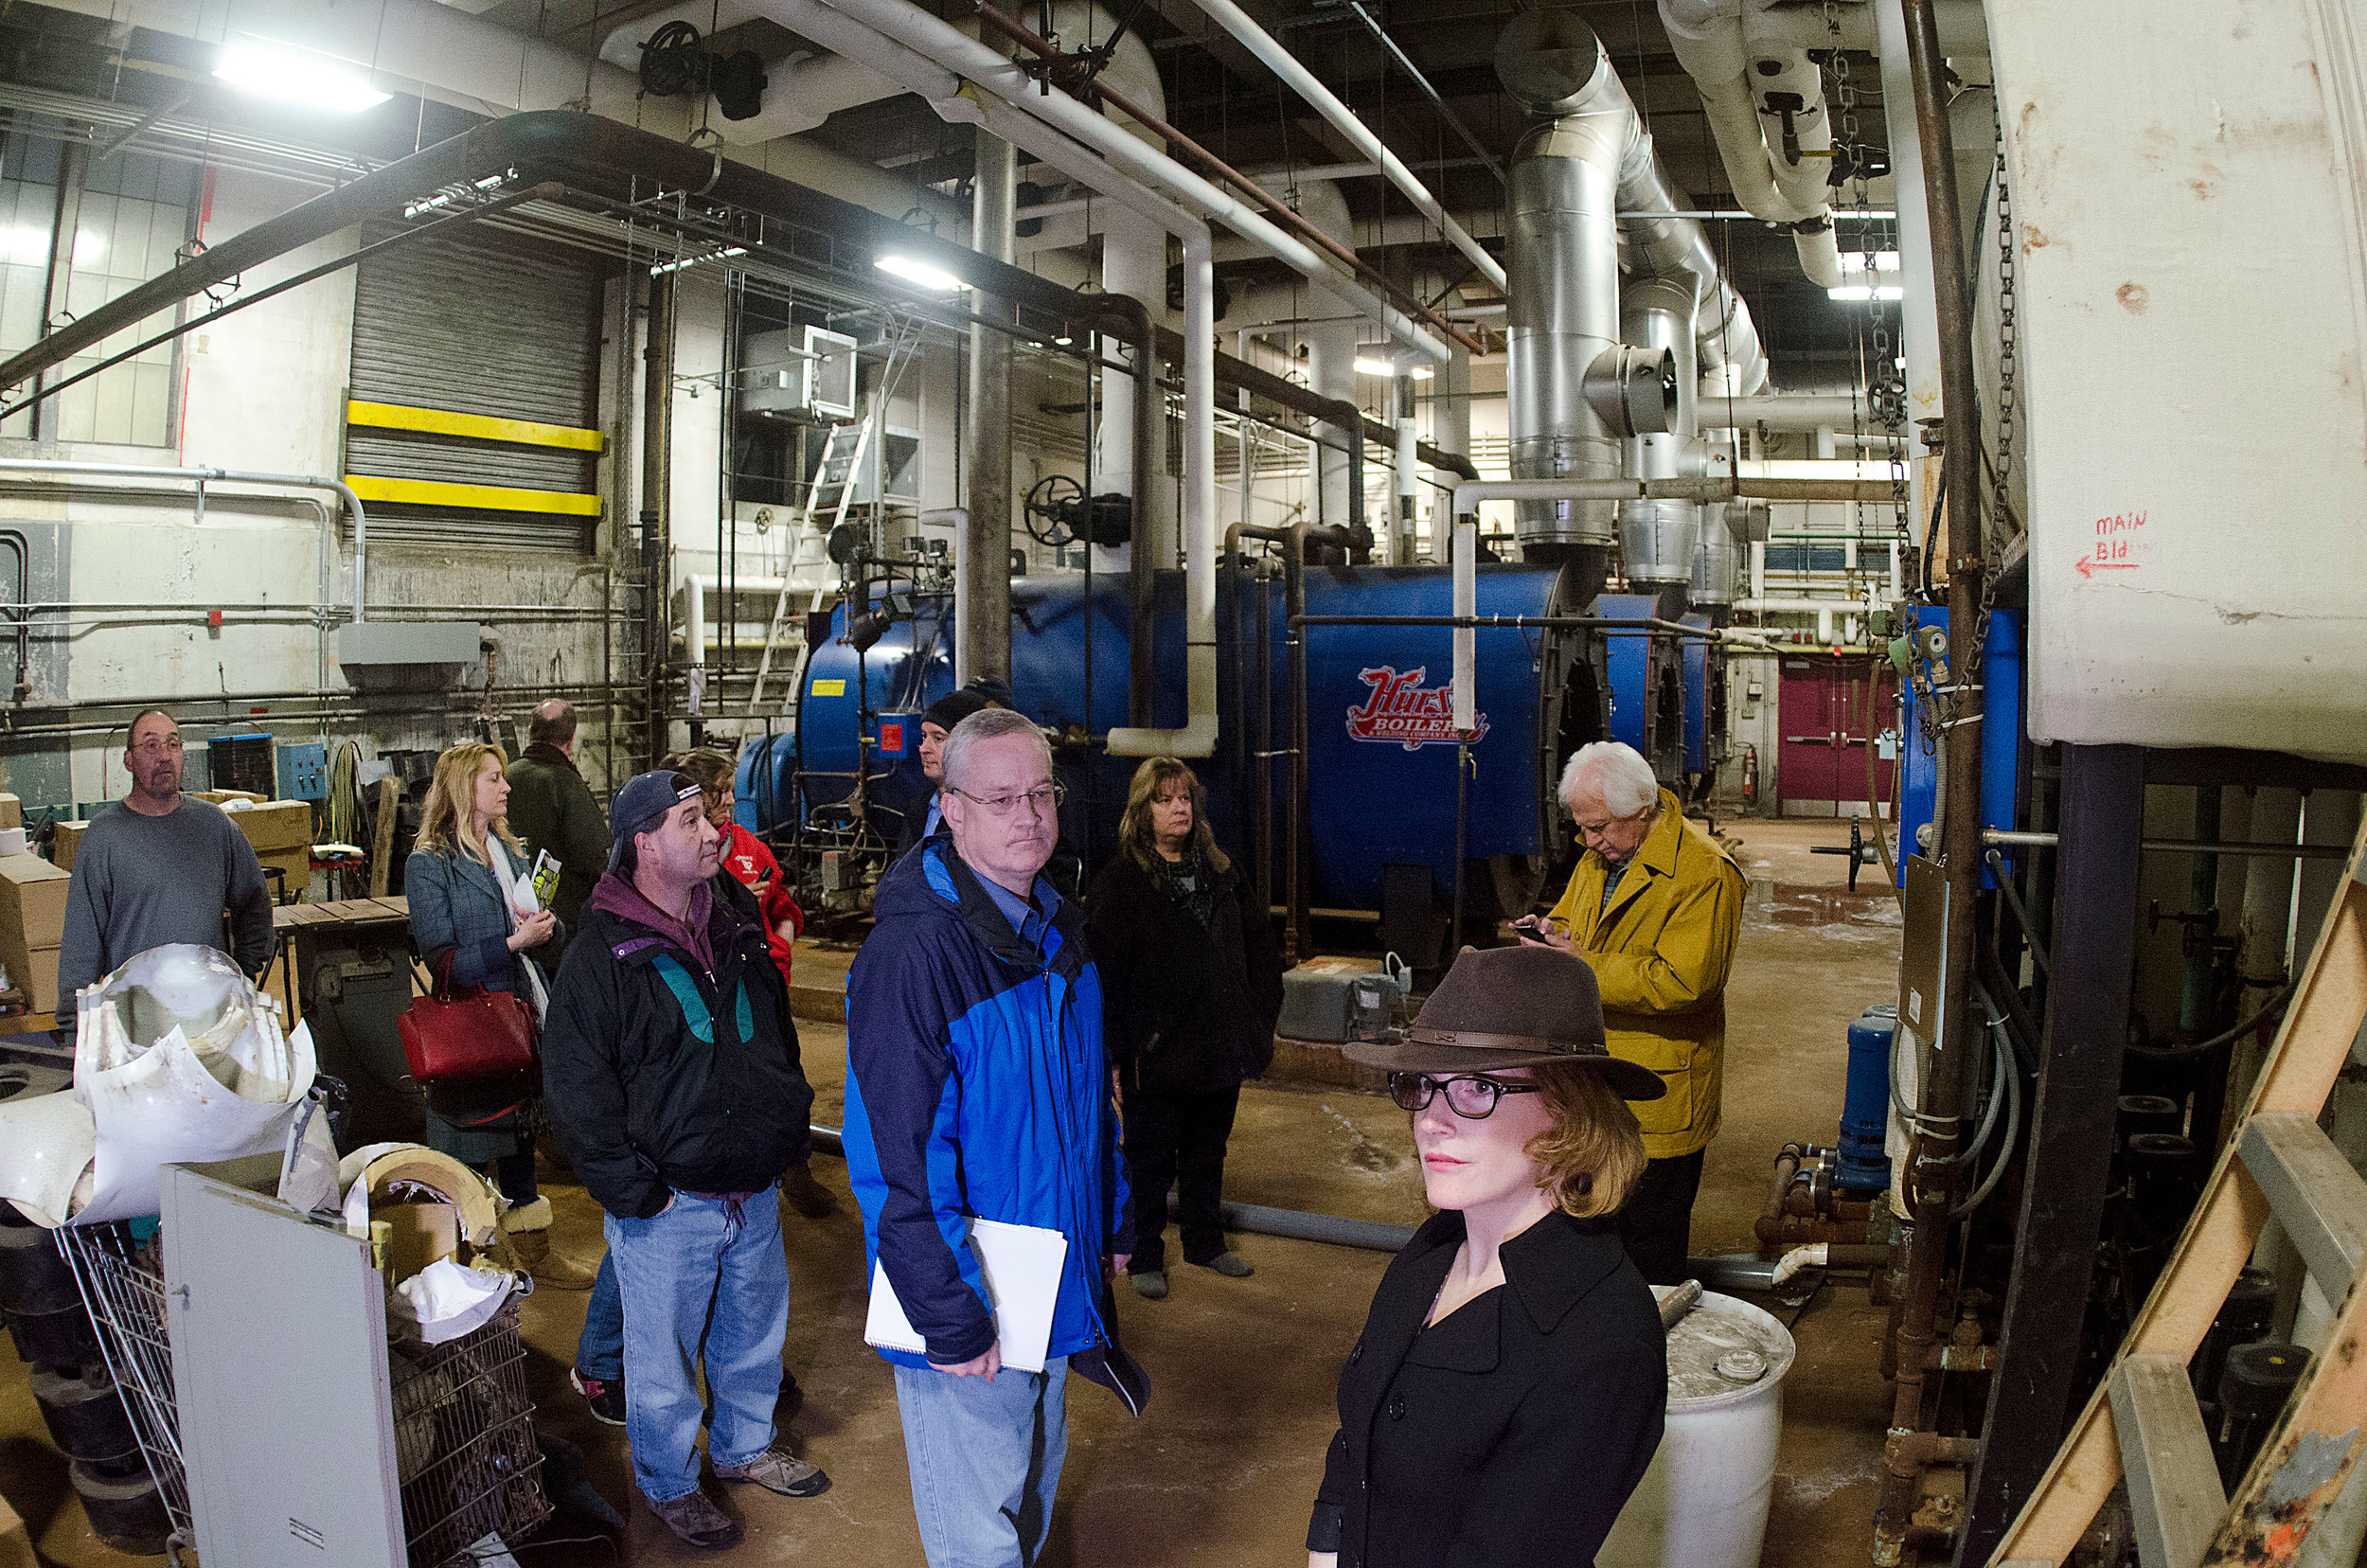 East Providence mayor James Briden (center) and finance director Lucy Maddock and members of the council and school committee take a long look around at the East Providence High School boiler room on Tuesday night during a walk through of the school.